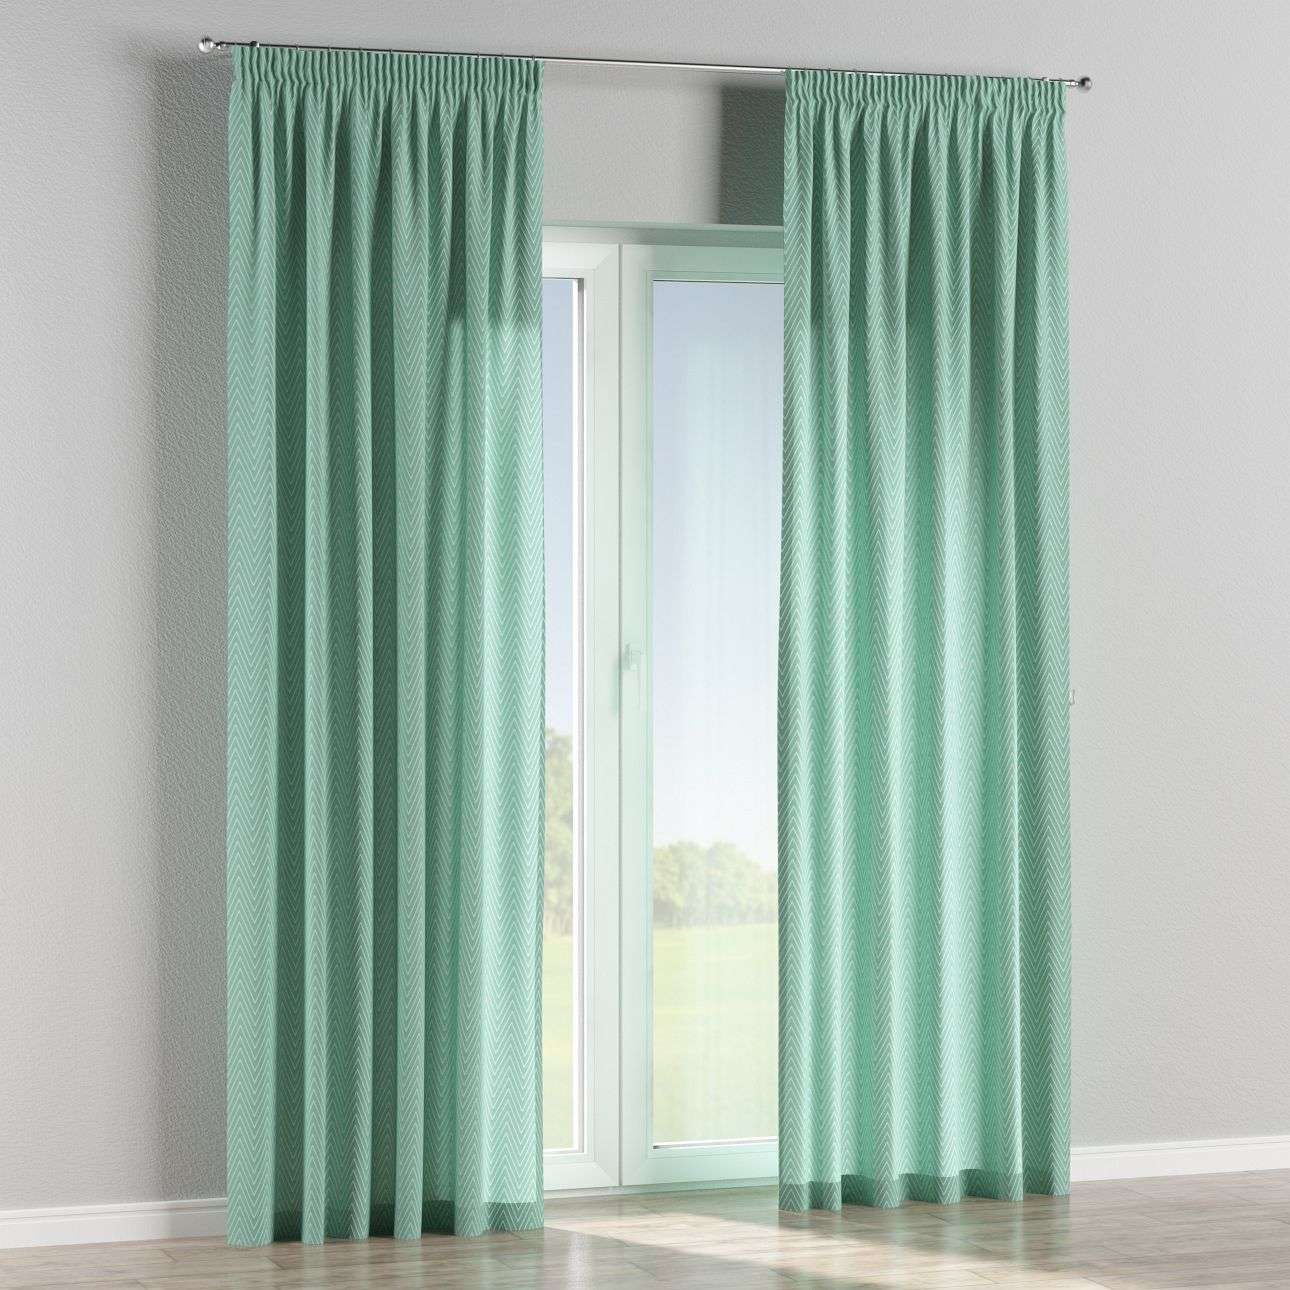 Pencil pleat curtains in collection Brooklyn, fabric: 137-90